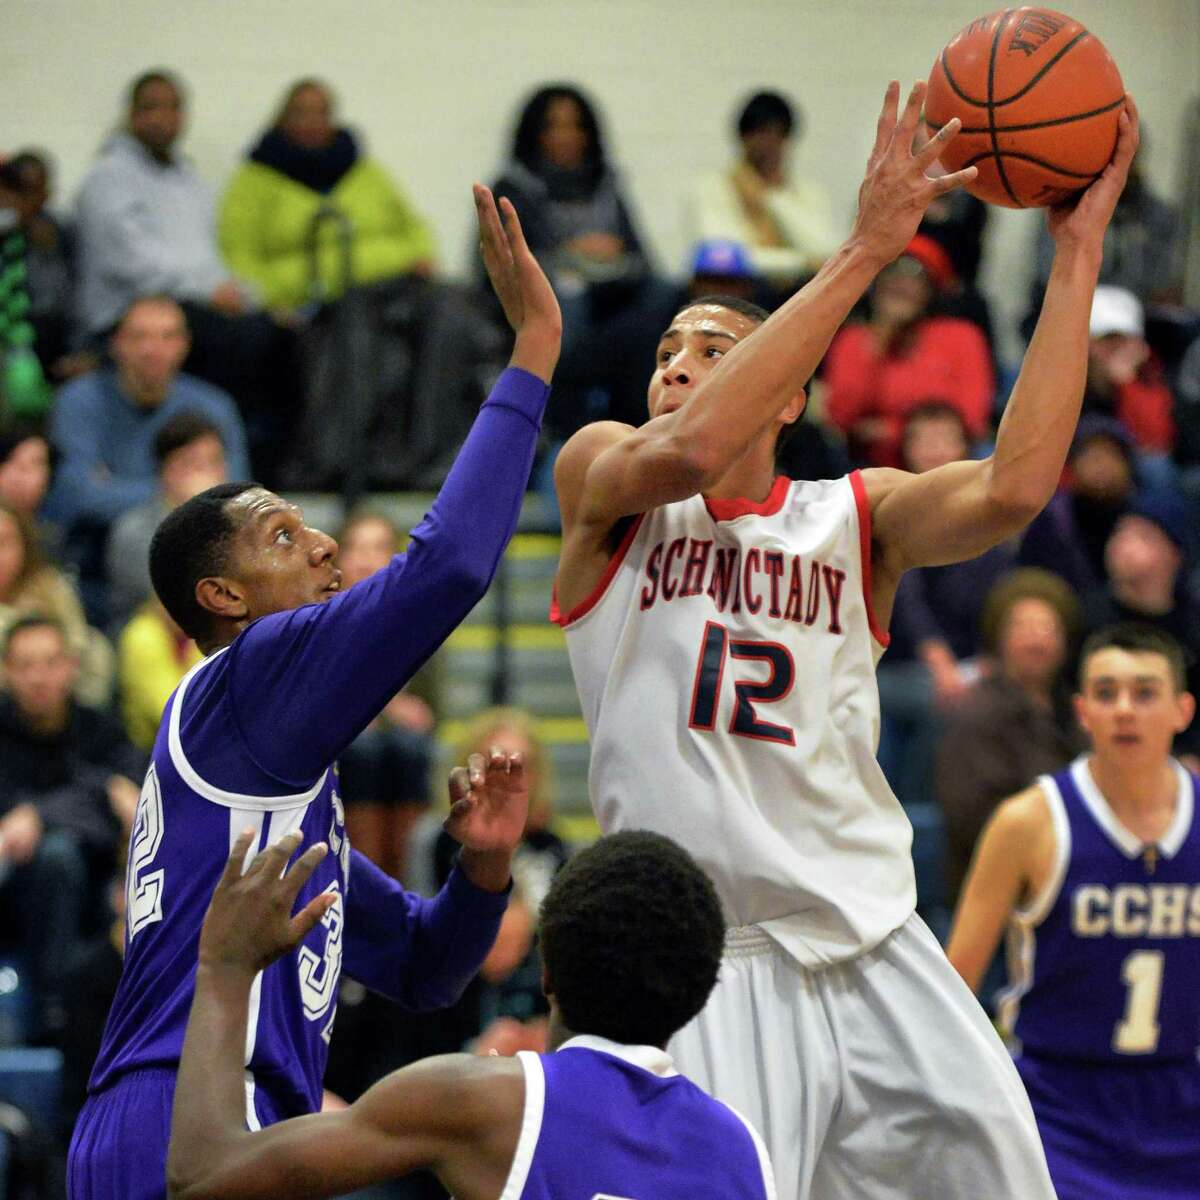 Schenectady's #12 Randall Symes, center, is guarded by CCHS's #32 Malik Miller during Saturday's game Jan. 25, 2014, in Schenectady, NY. (John Carl D'Annibale / Times Union)